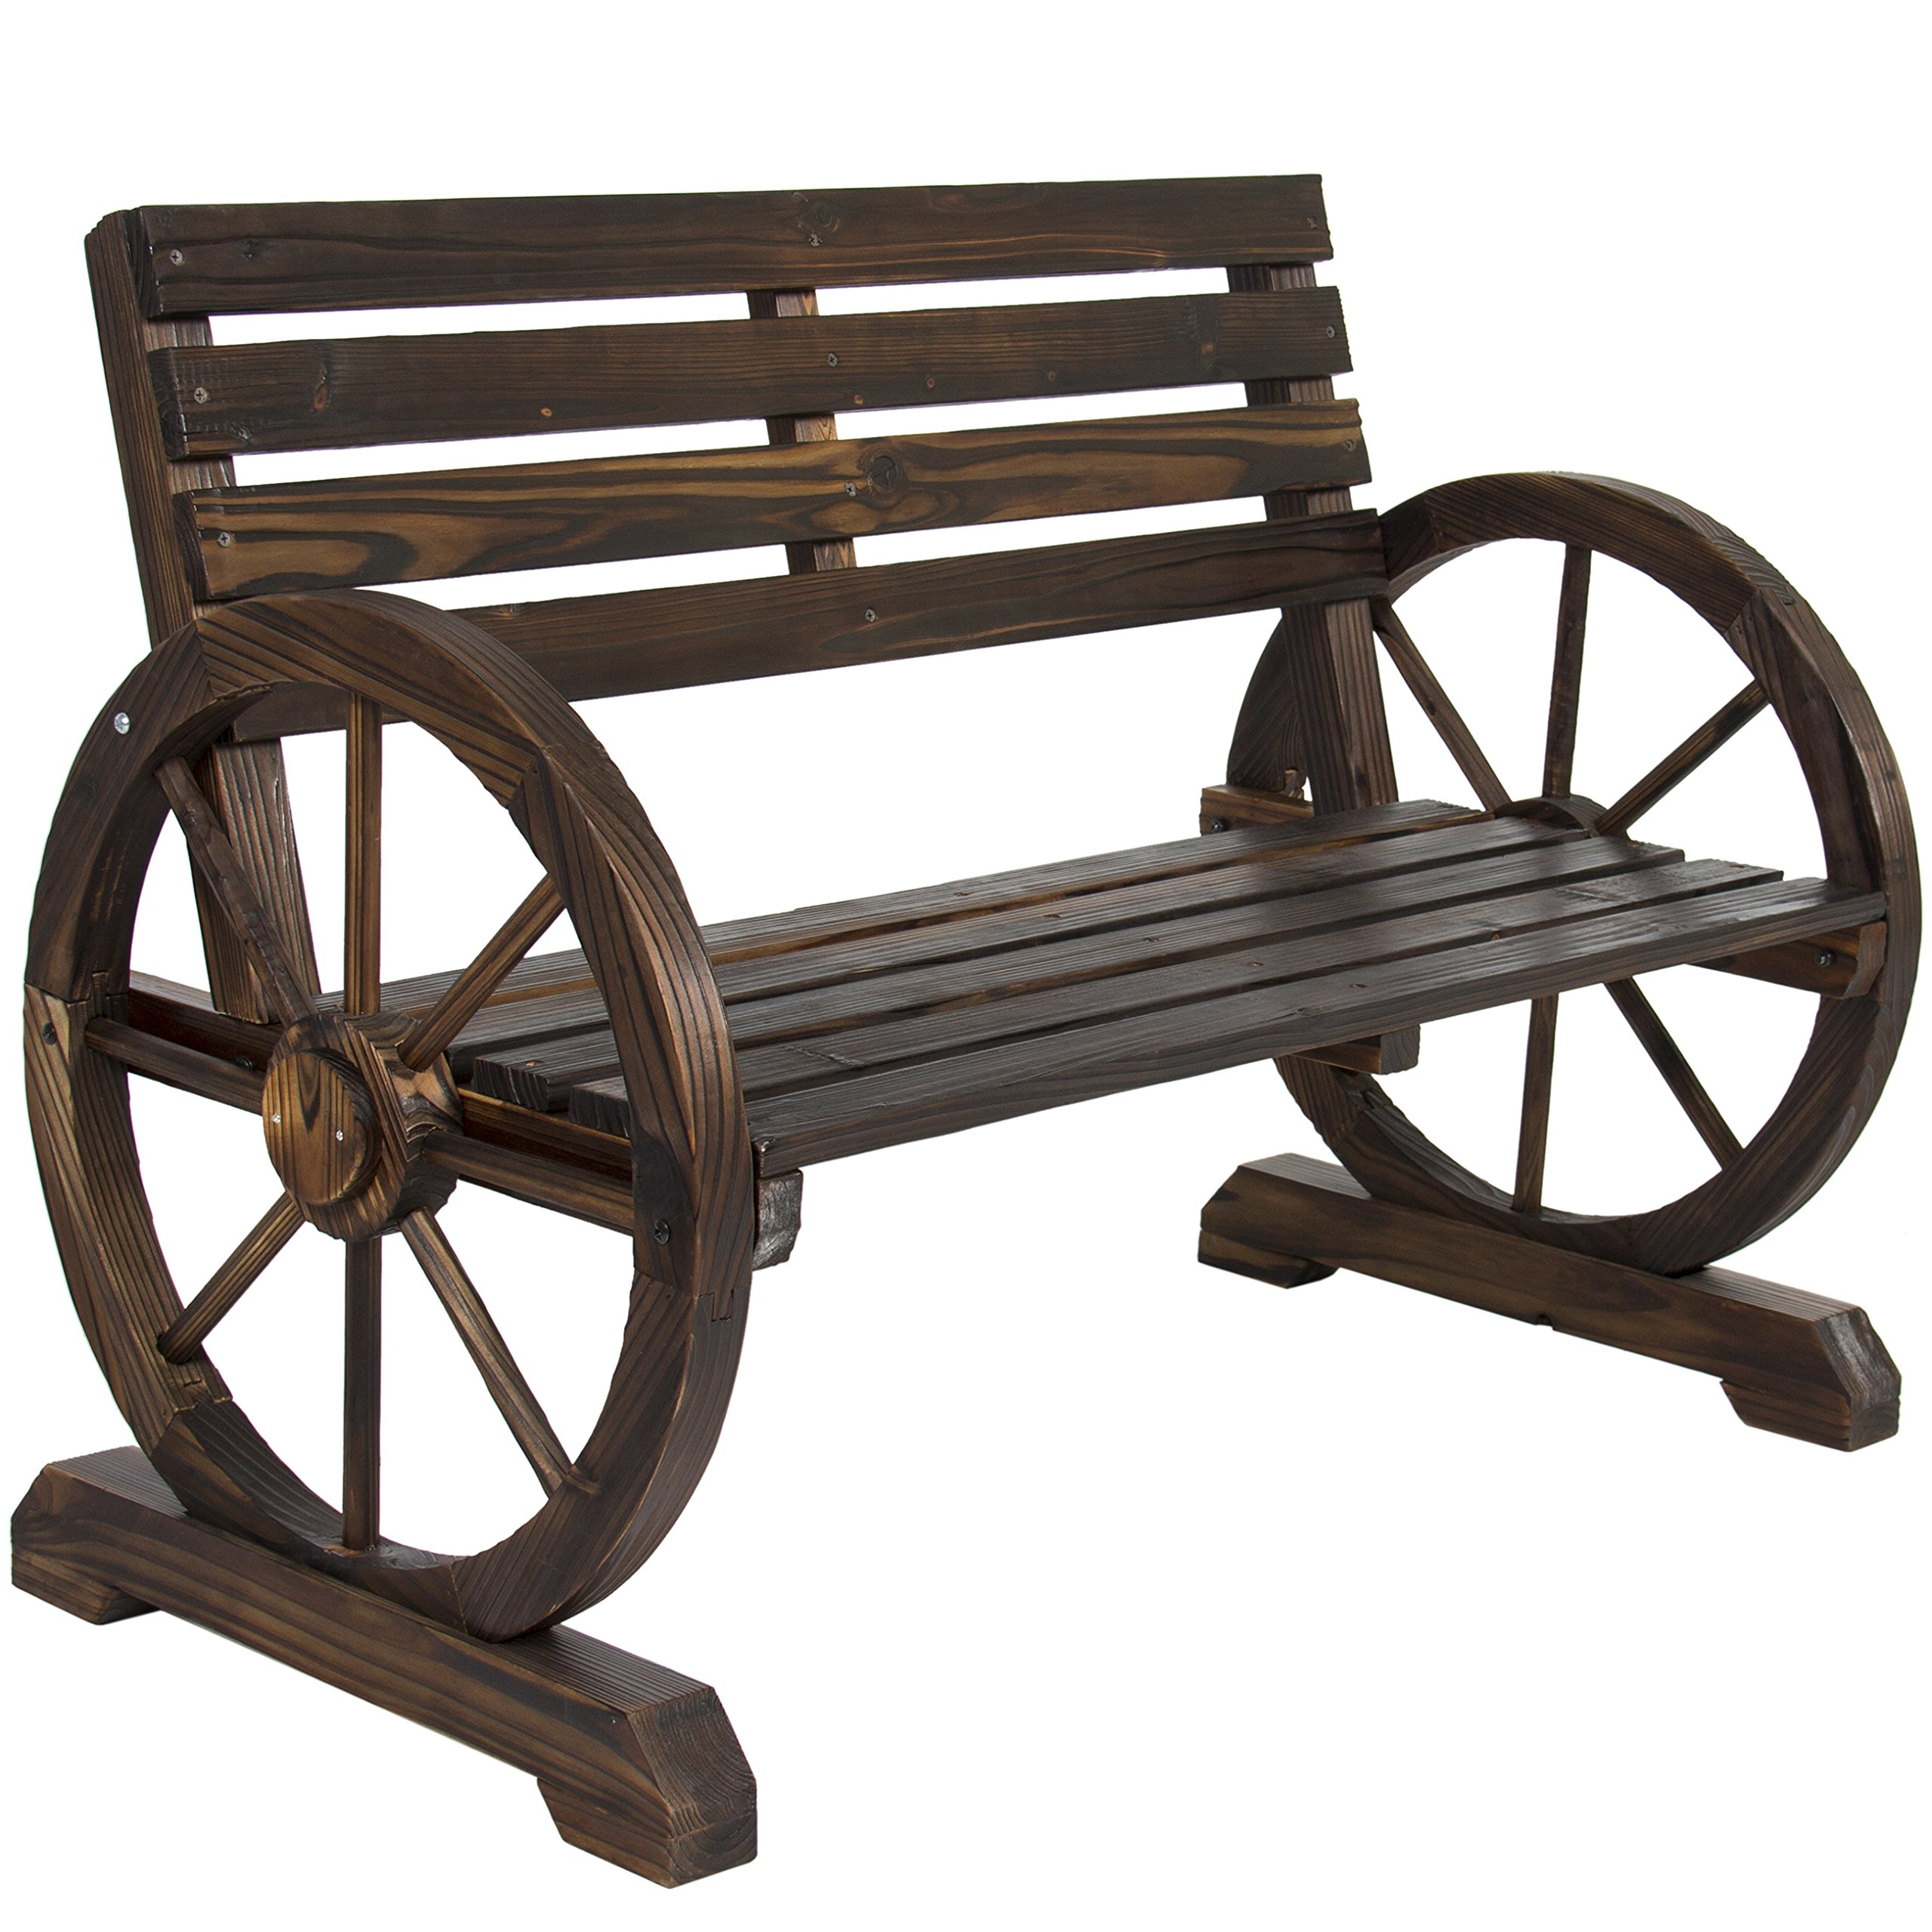 Attrayant Get Quotations · Best Choice Products Patio Garden Wooden Wagon Wheel Bench  Rustic Wood Design Outdoor Furniture